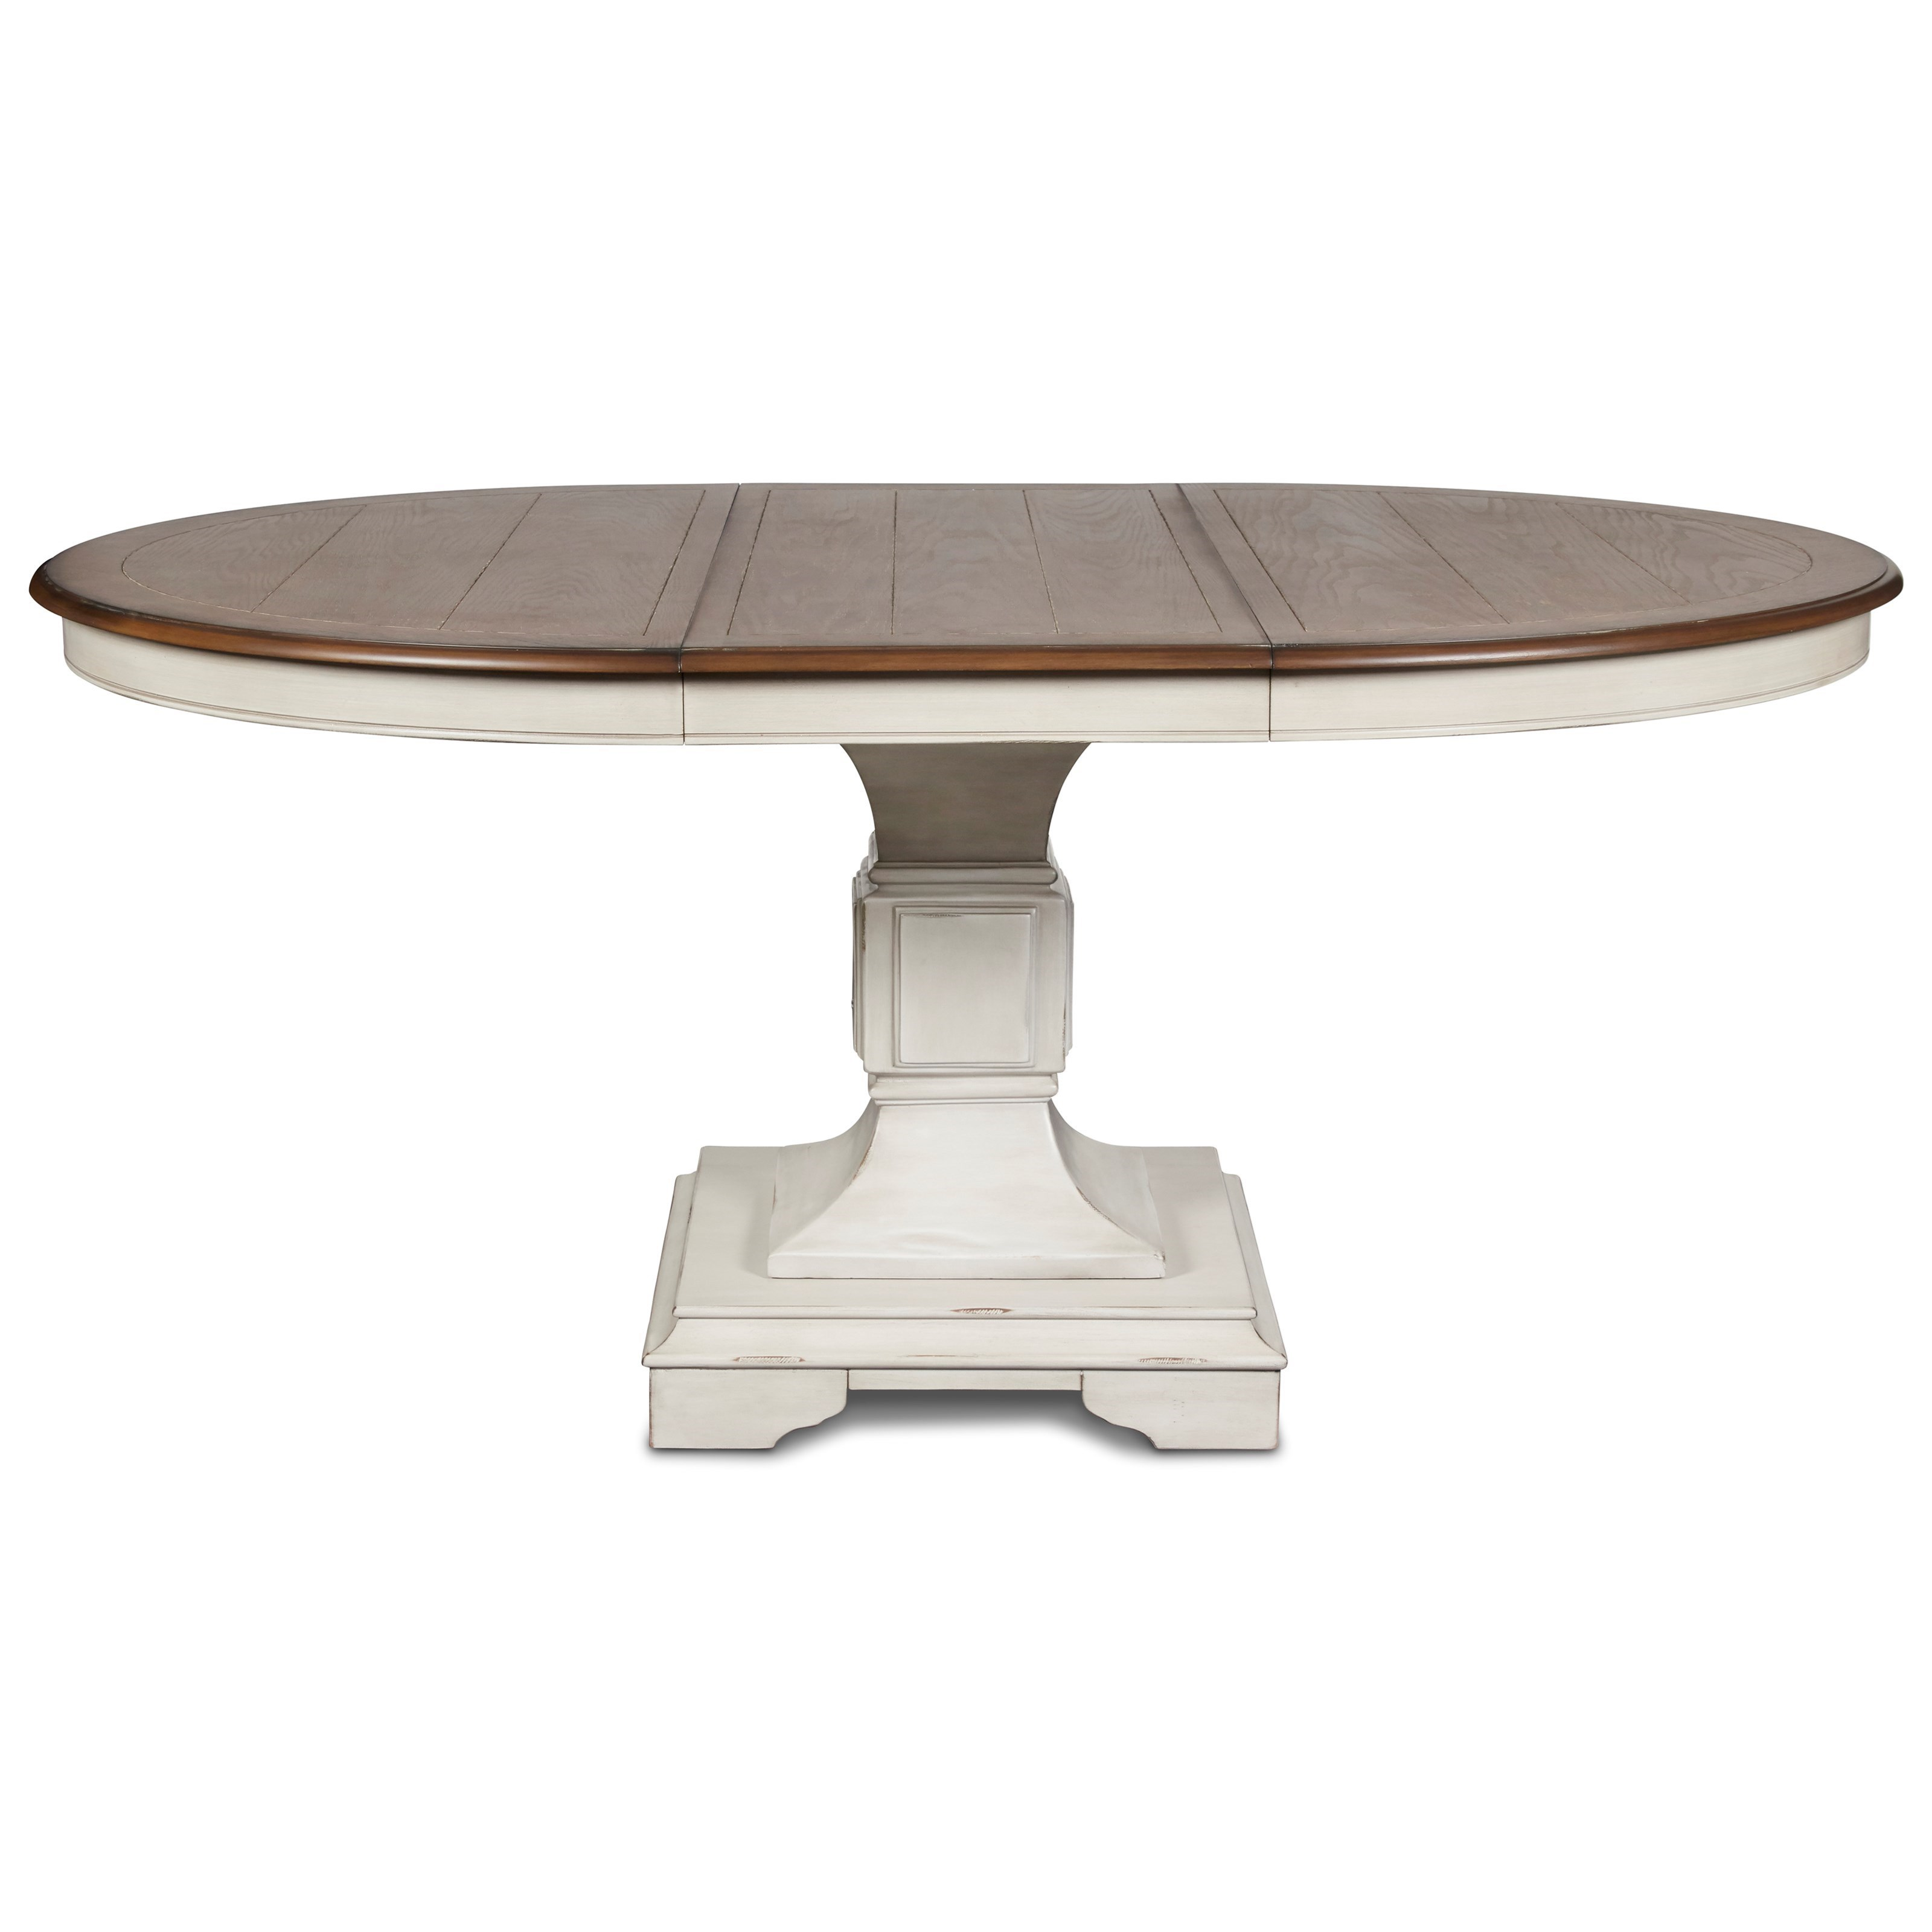 Anastasia Round Table by New Classic at Beds N Stuff